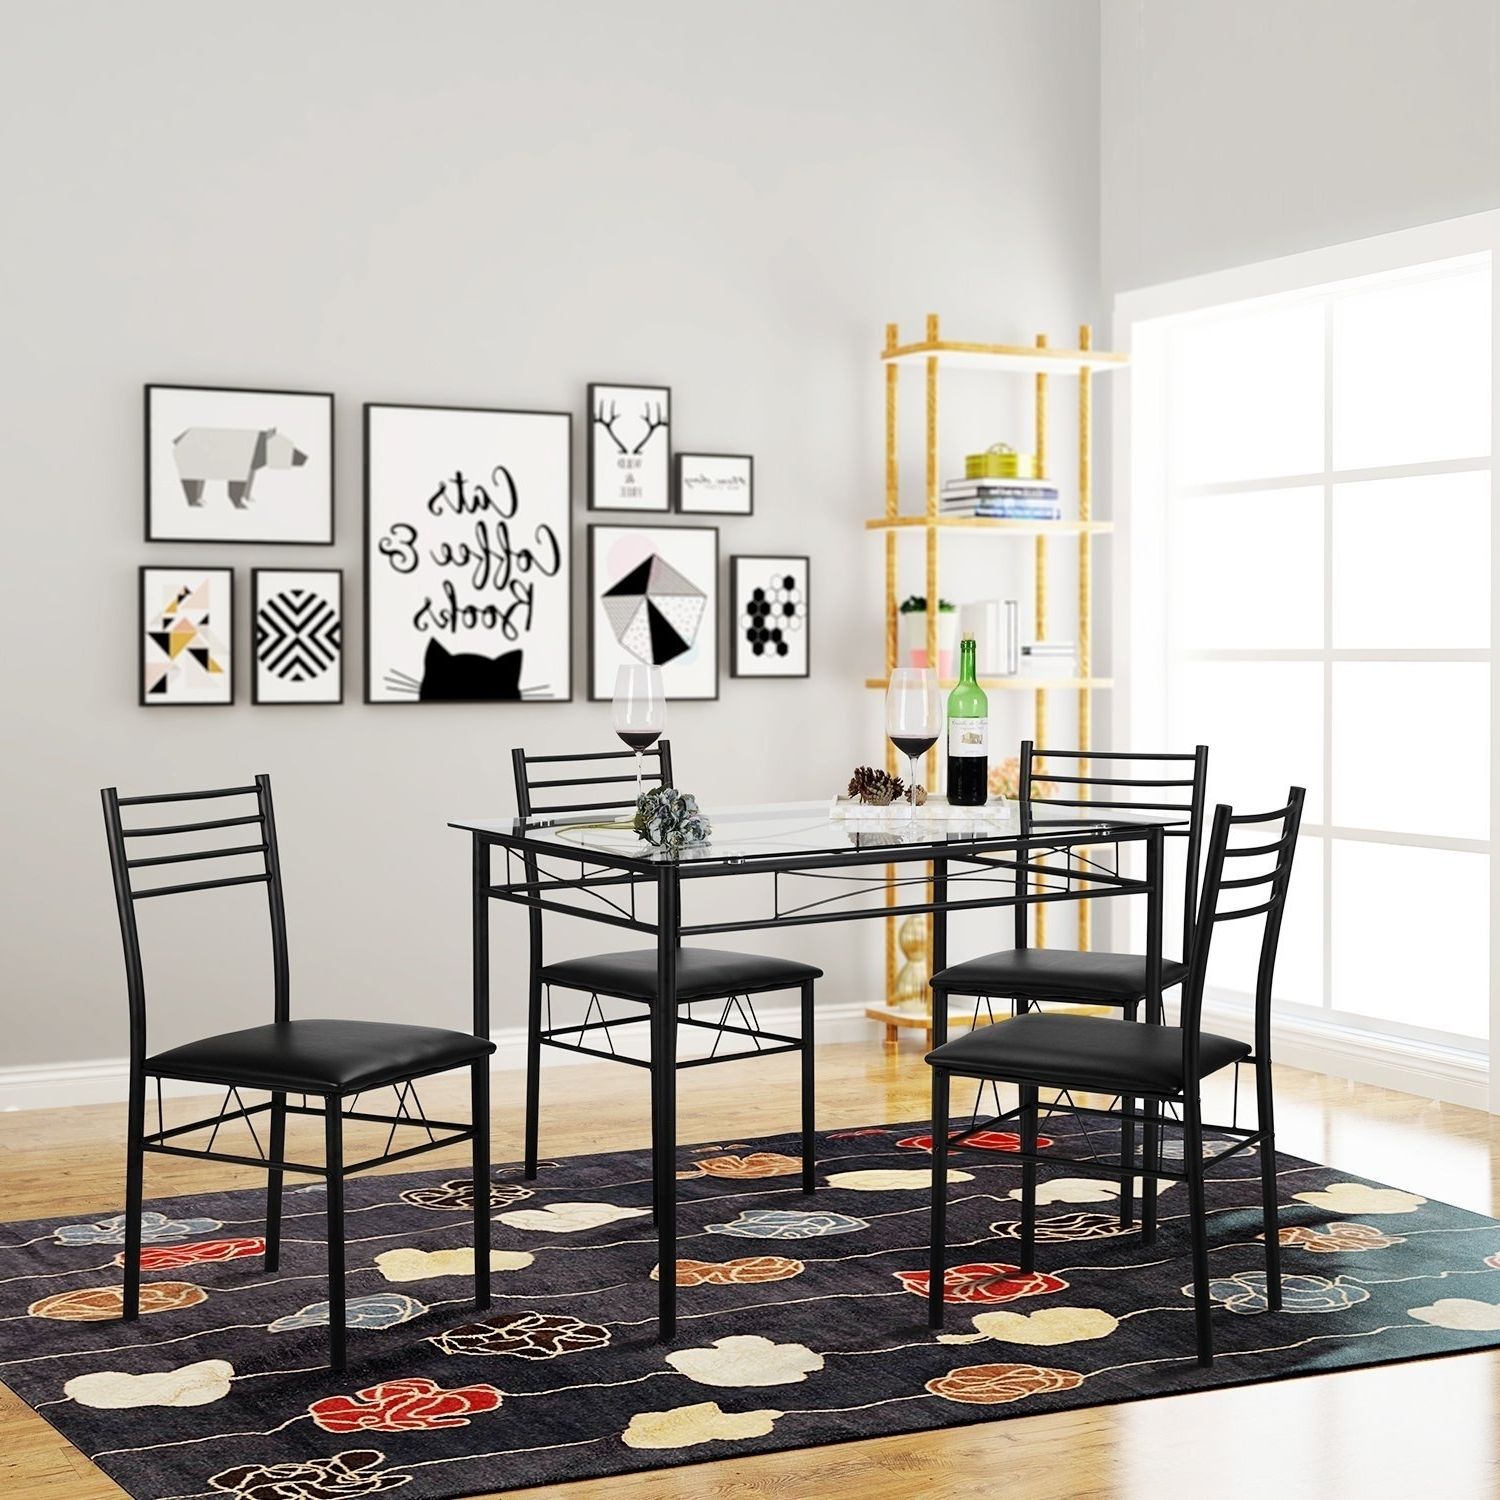 Dining Room Glass Tables Sets Regarding Widely Used Shop Vecelo Kitchen Dining Table Sets,tempered Glass Table With  (View 13 of 25)